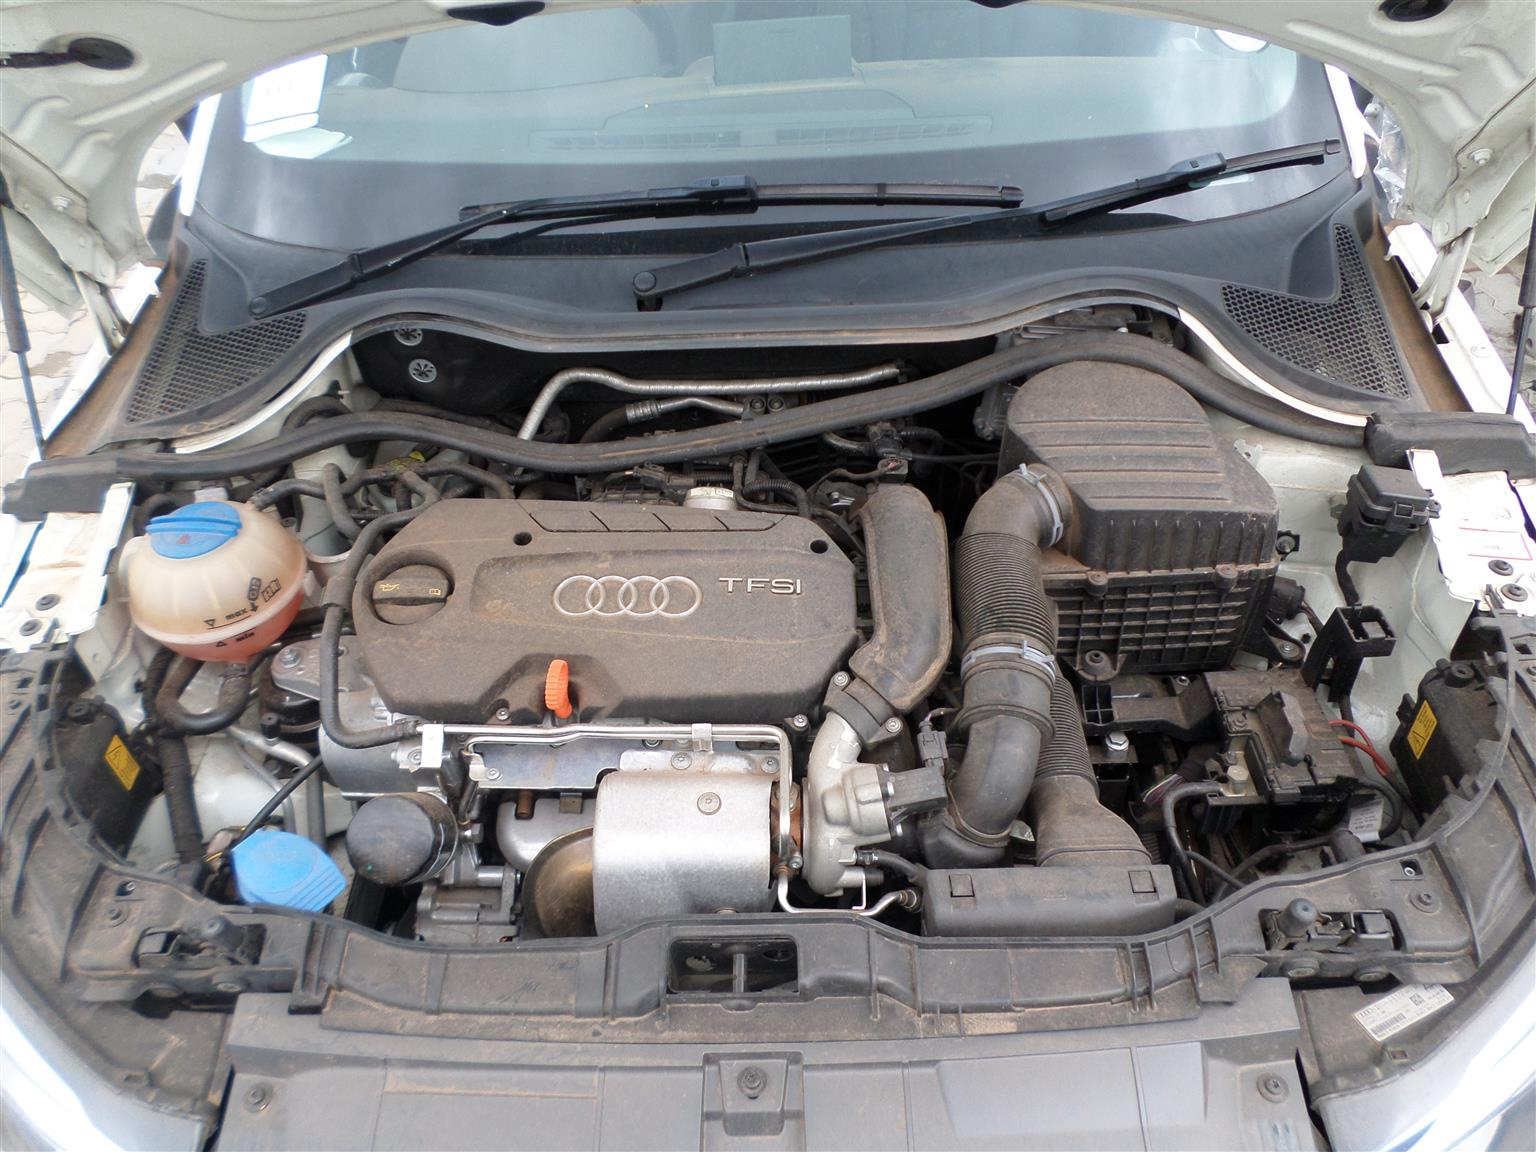 Audi A1 1.4 TFSI Attraction 3door 2011 now for stripping of all parts.